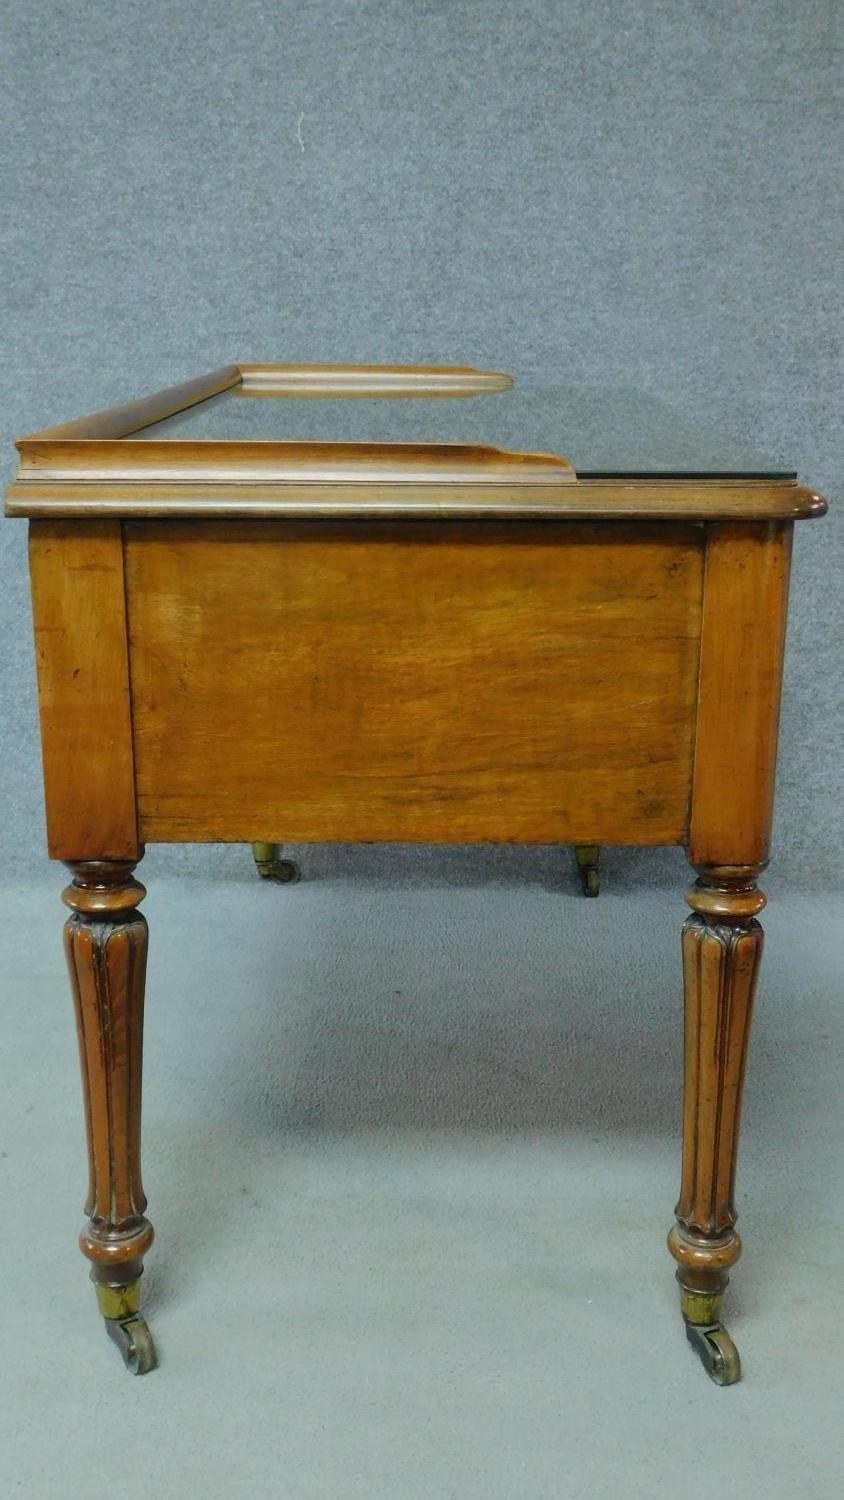 A William IV mahogany writing table with glass inset top and five frieze drawers, raised on tapering - Image 7 of 7